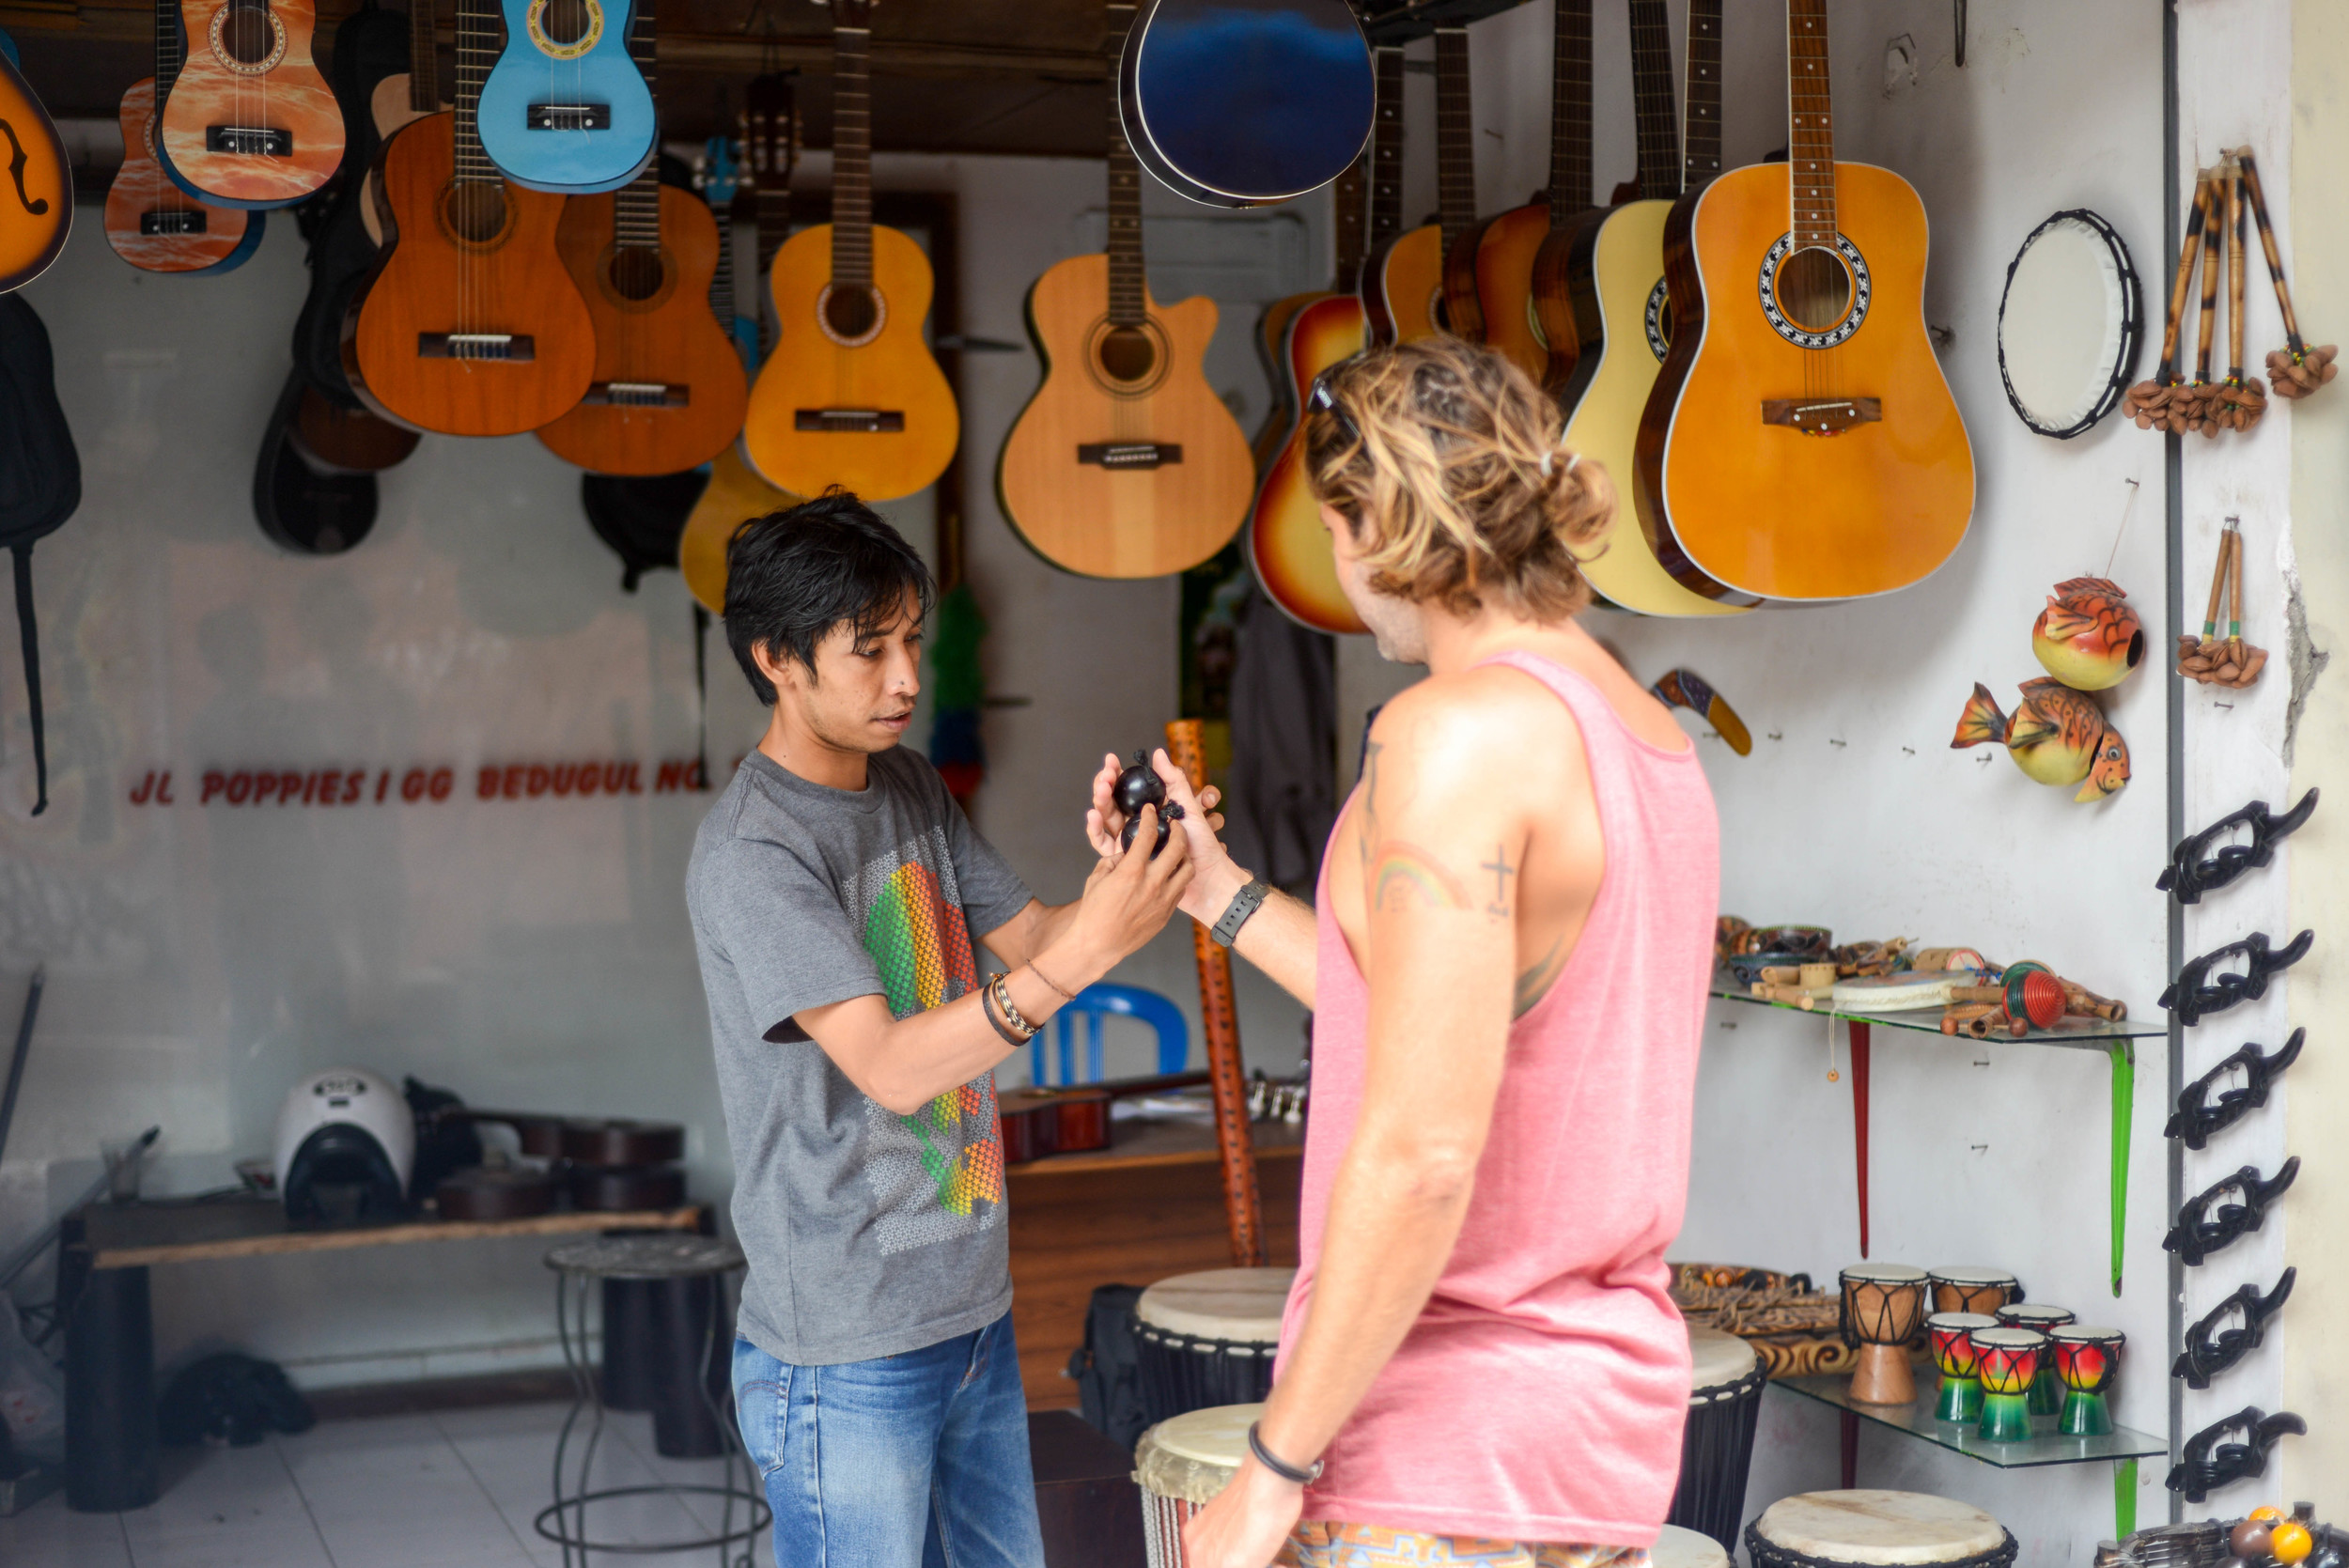 Jonny getting a percussion lesson from a local in Kuta.